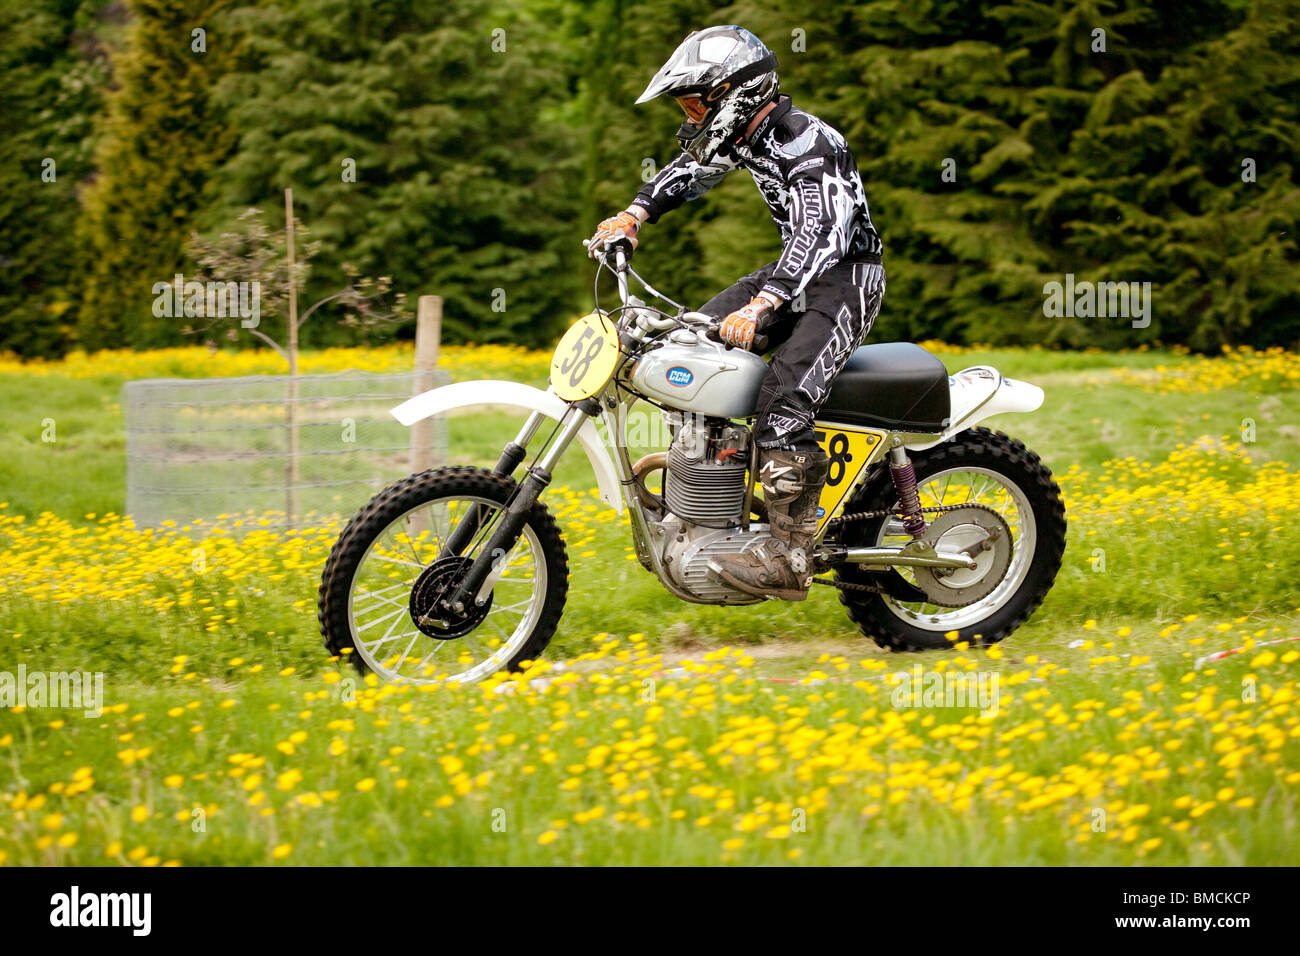 Classic motocross demo at the Barony College open day motorcycle racing through field of spring buttercups near - Stock Image